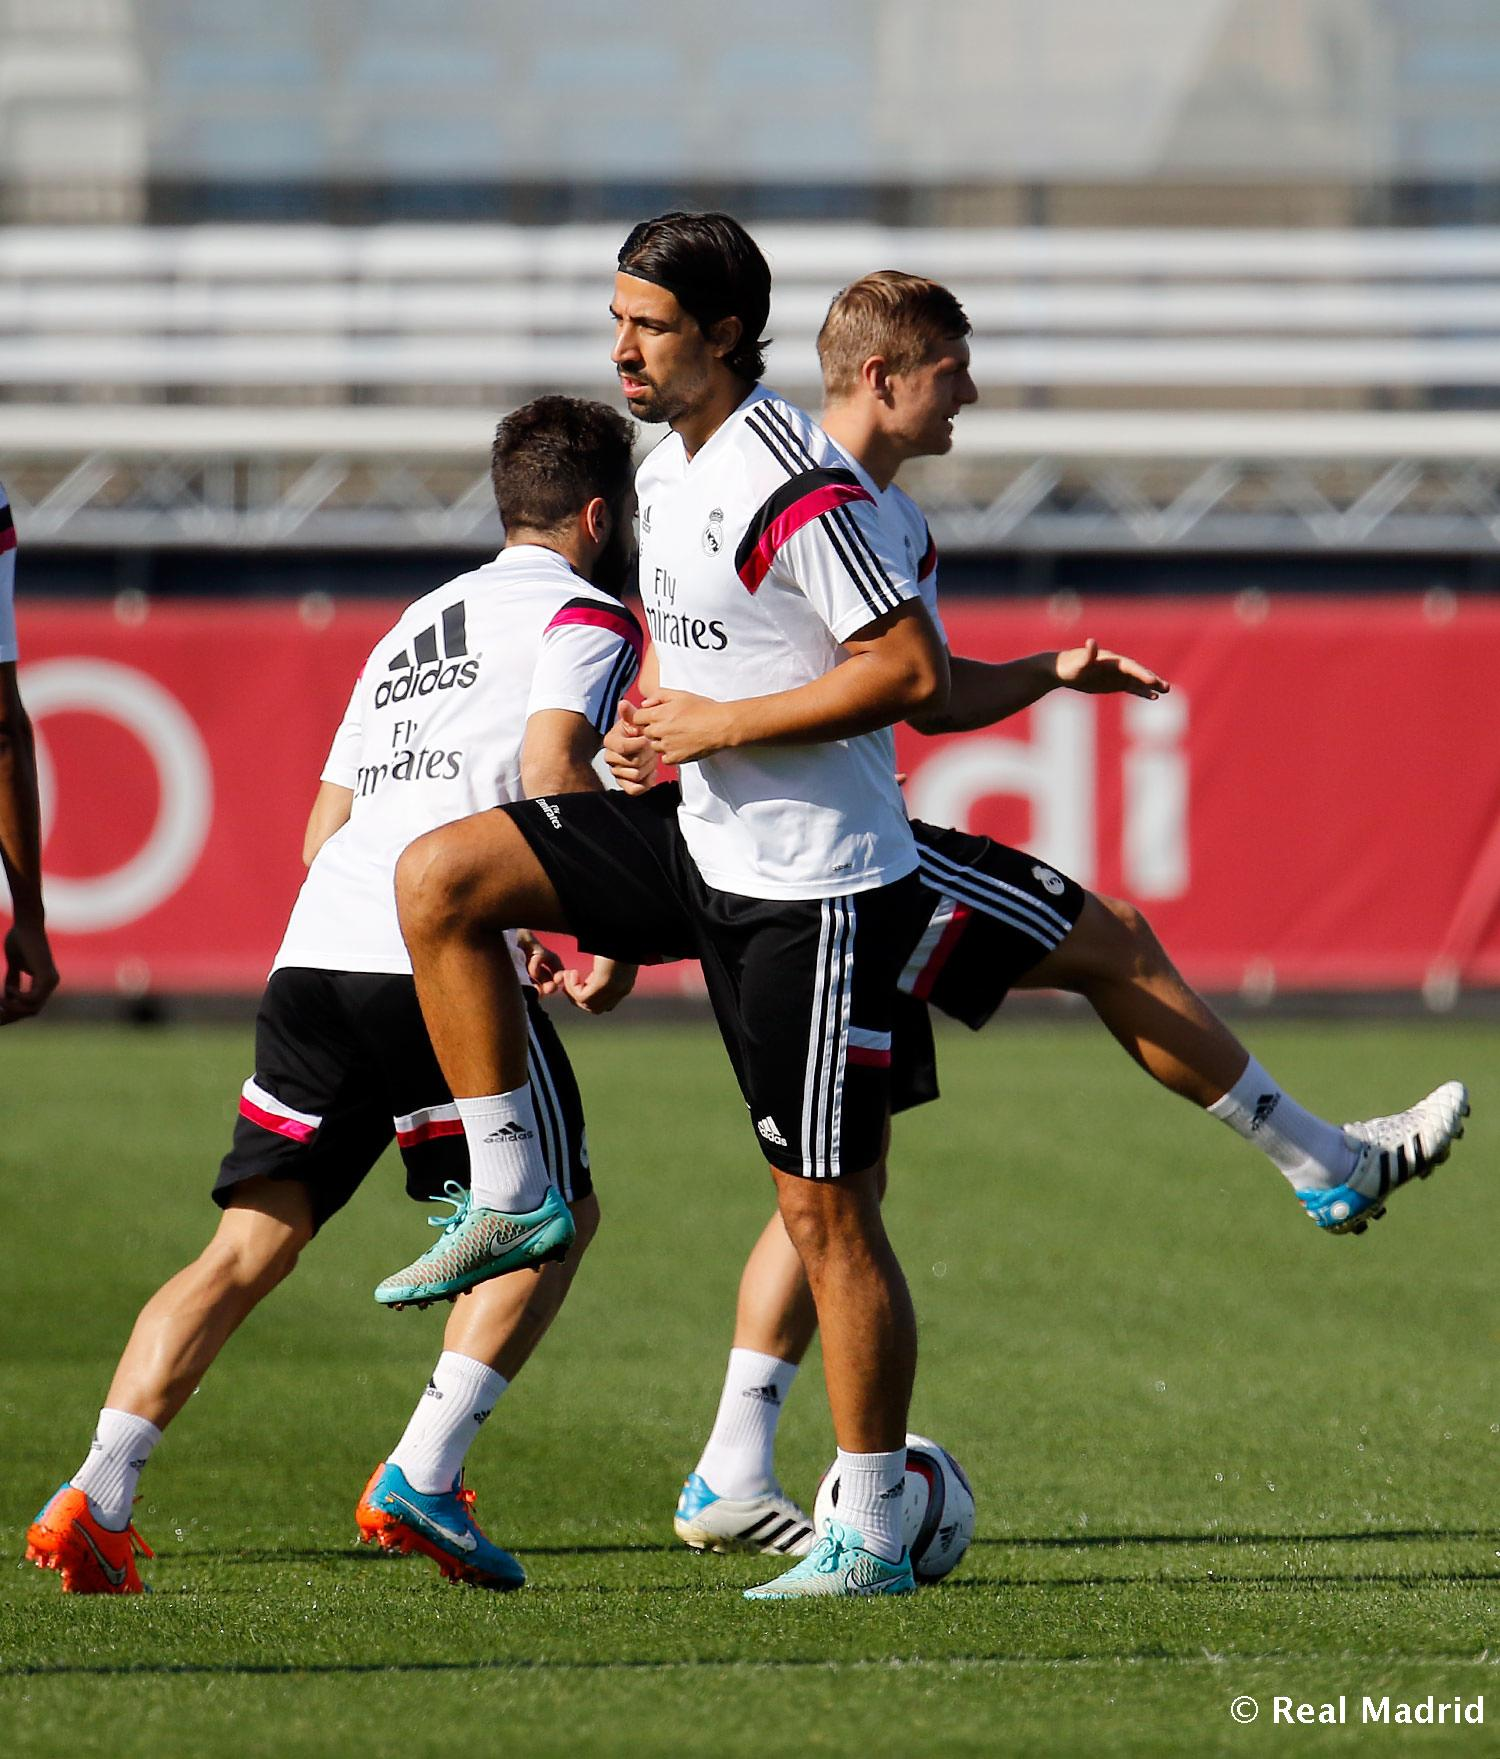 Real Madrid - Entrenamiento del Real Madrid - 27-10-2014